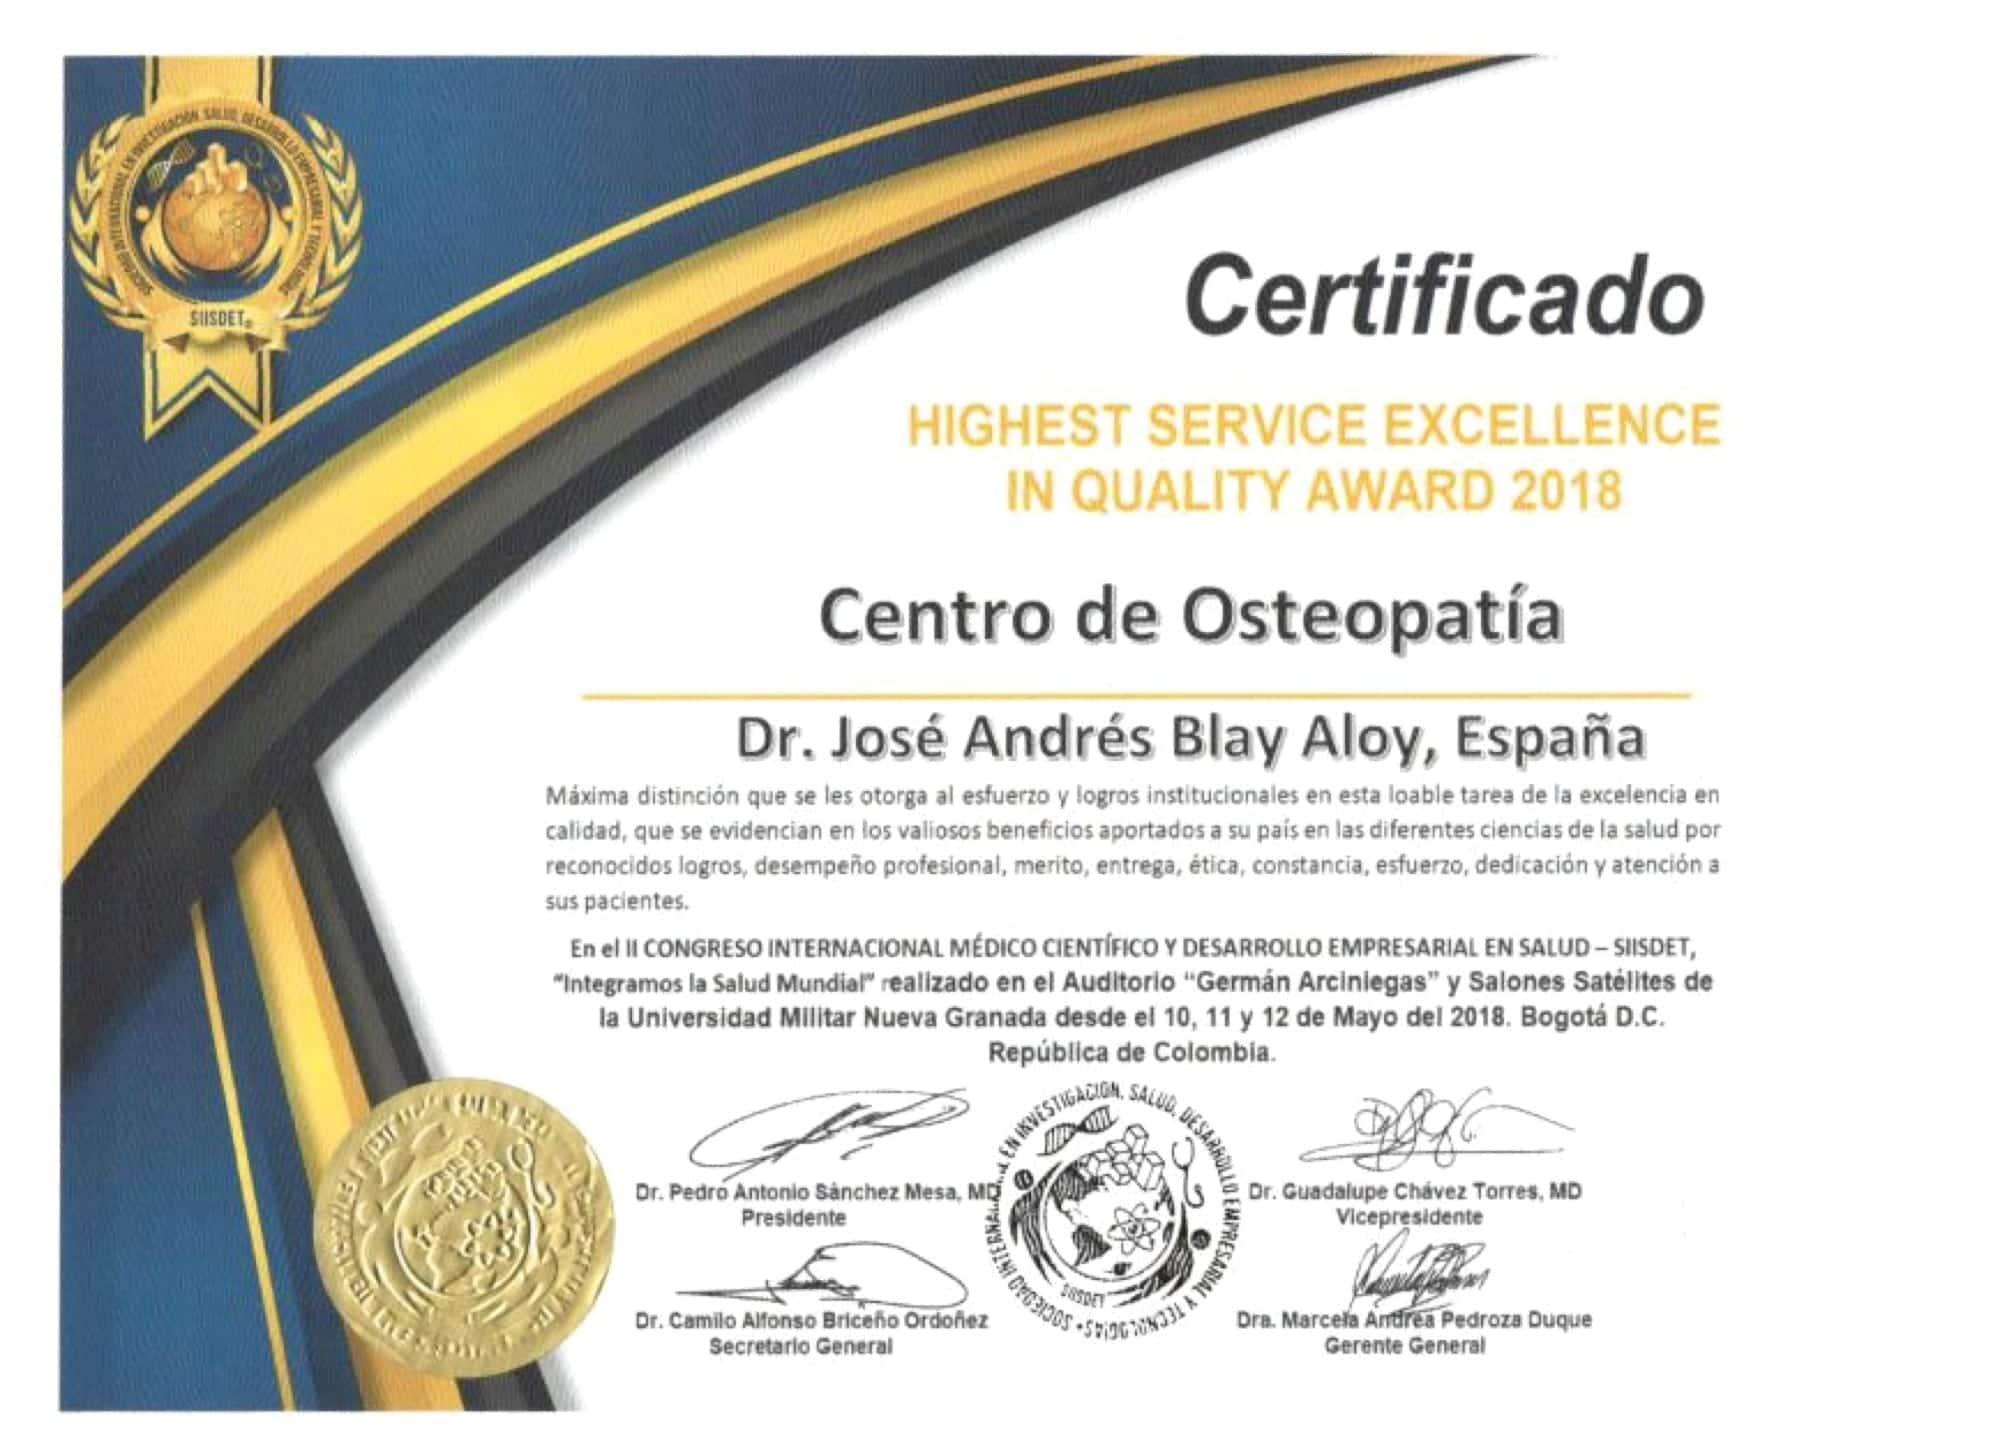 Certificado Highest Service Excellence Jose Andres Blay Aloy